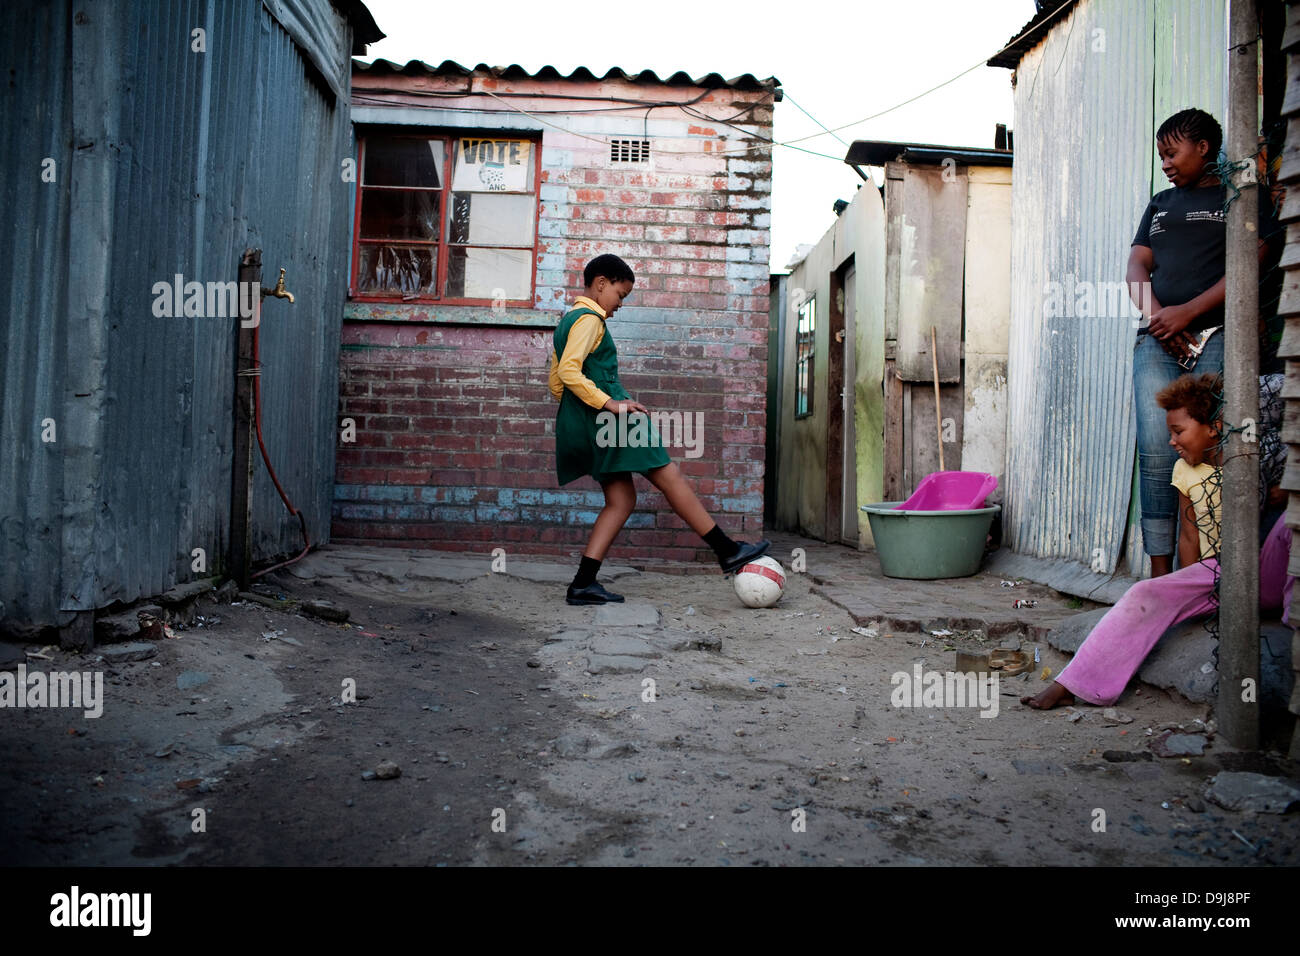 Grassroot Soccer uses power soccer to educate inspire mobilize communities to stop spread HIV Likhona practices - Stock Image